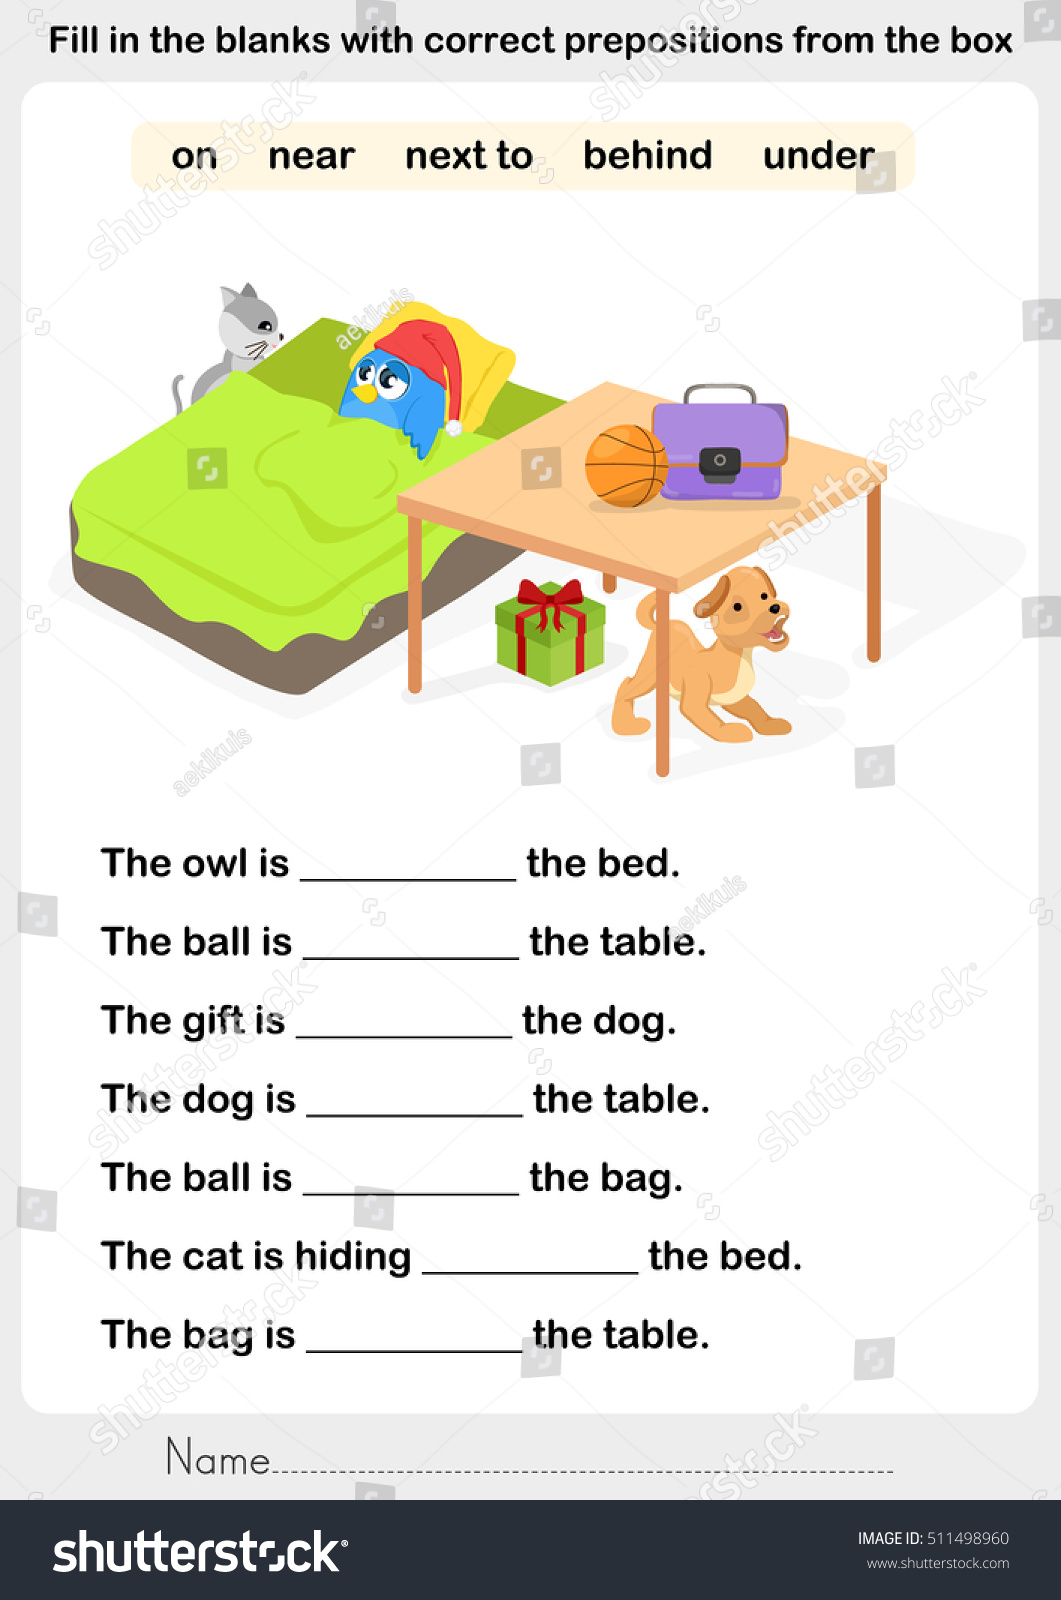 100 Prepositions Worksheets With Answers – Preposition Worksheets